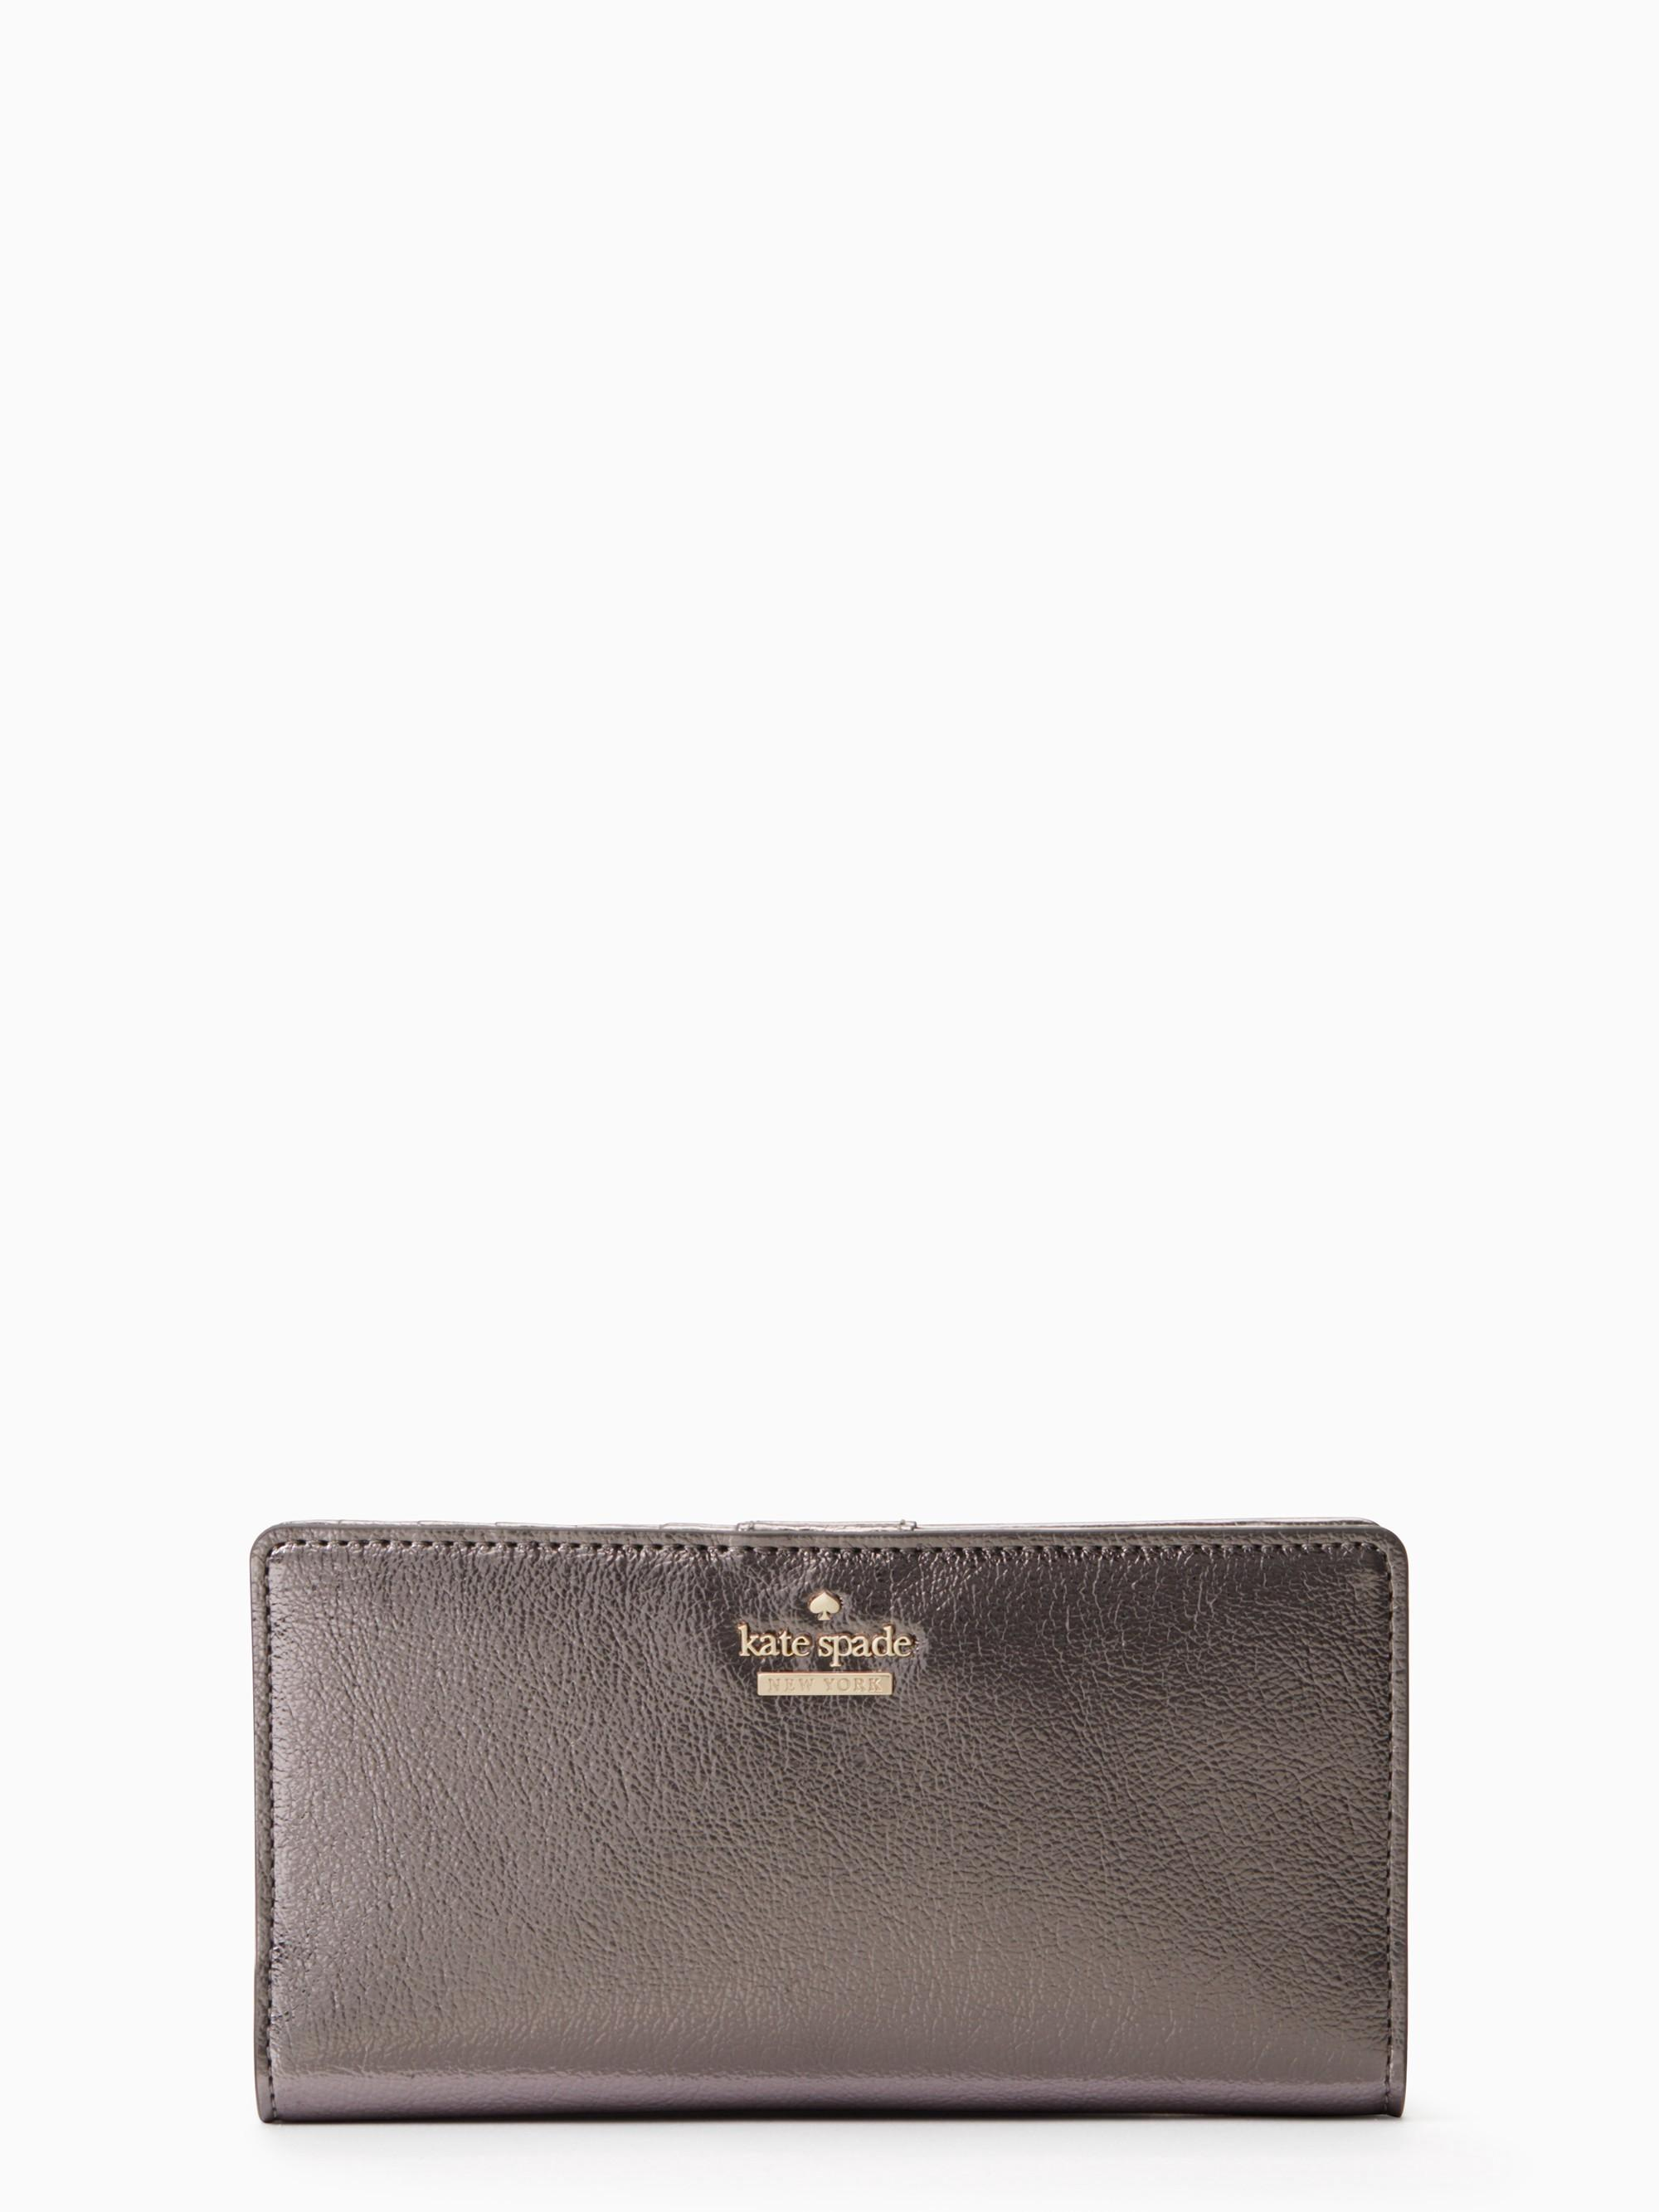 Kate Spade Highland Drive Stacy In Anthracite